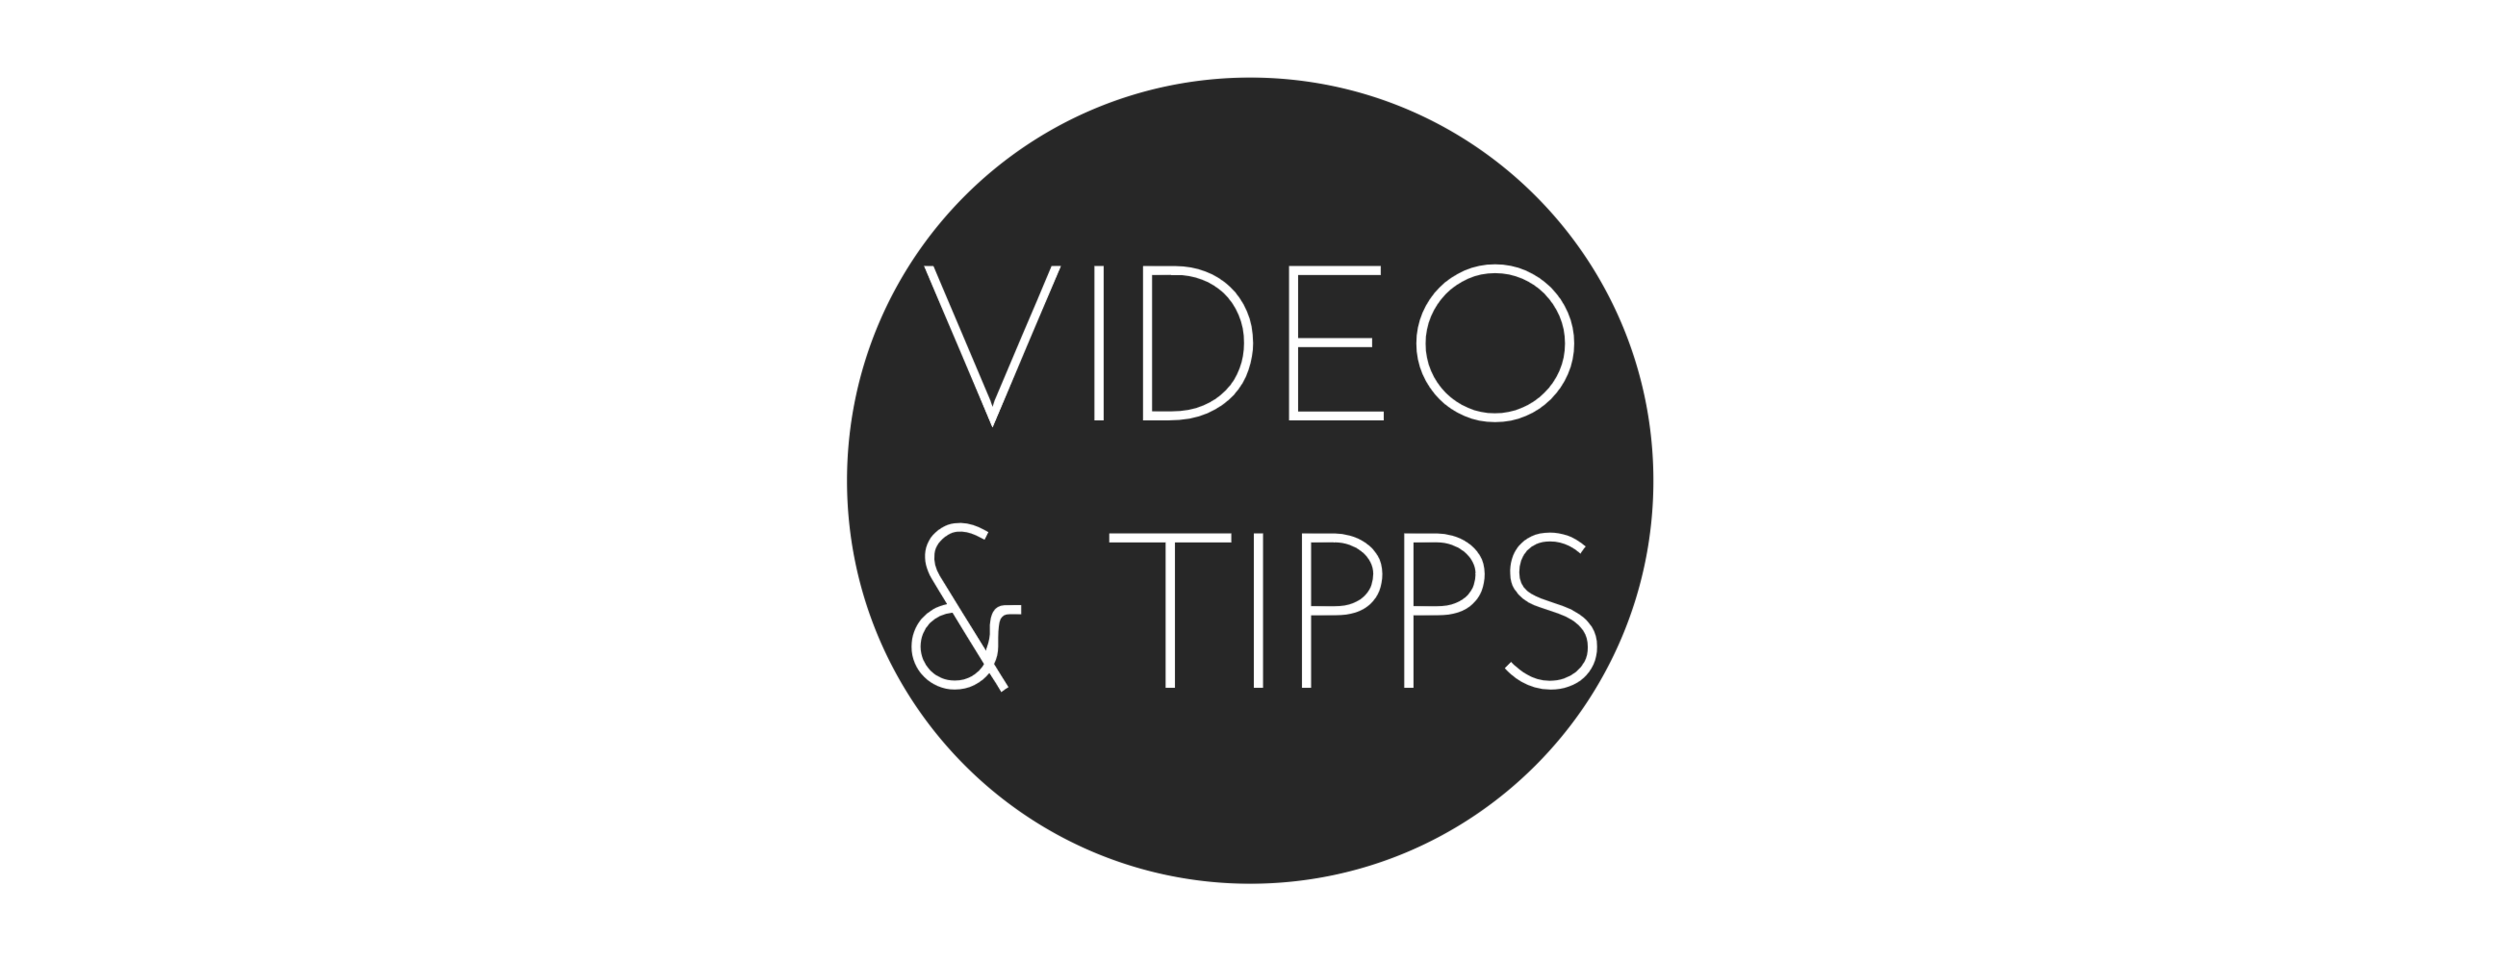 video-tipps.png